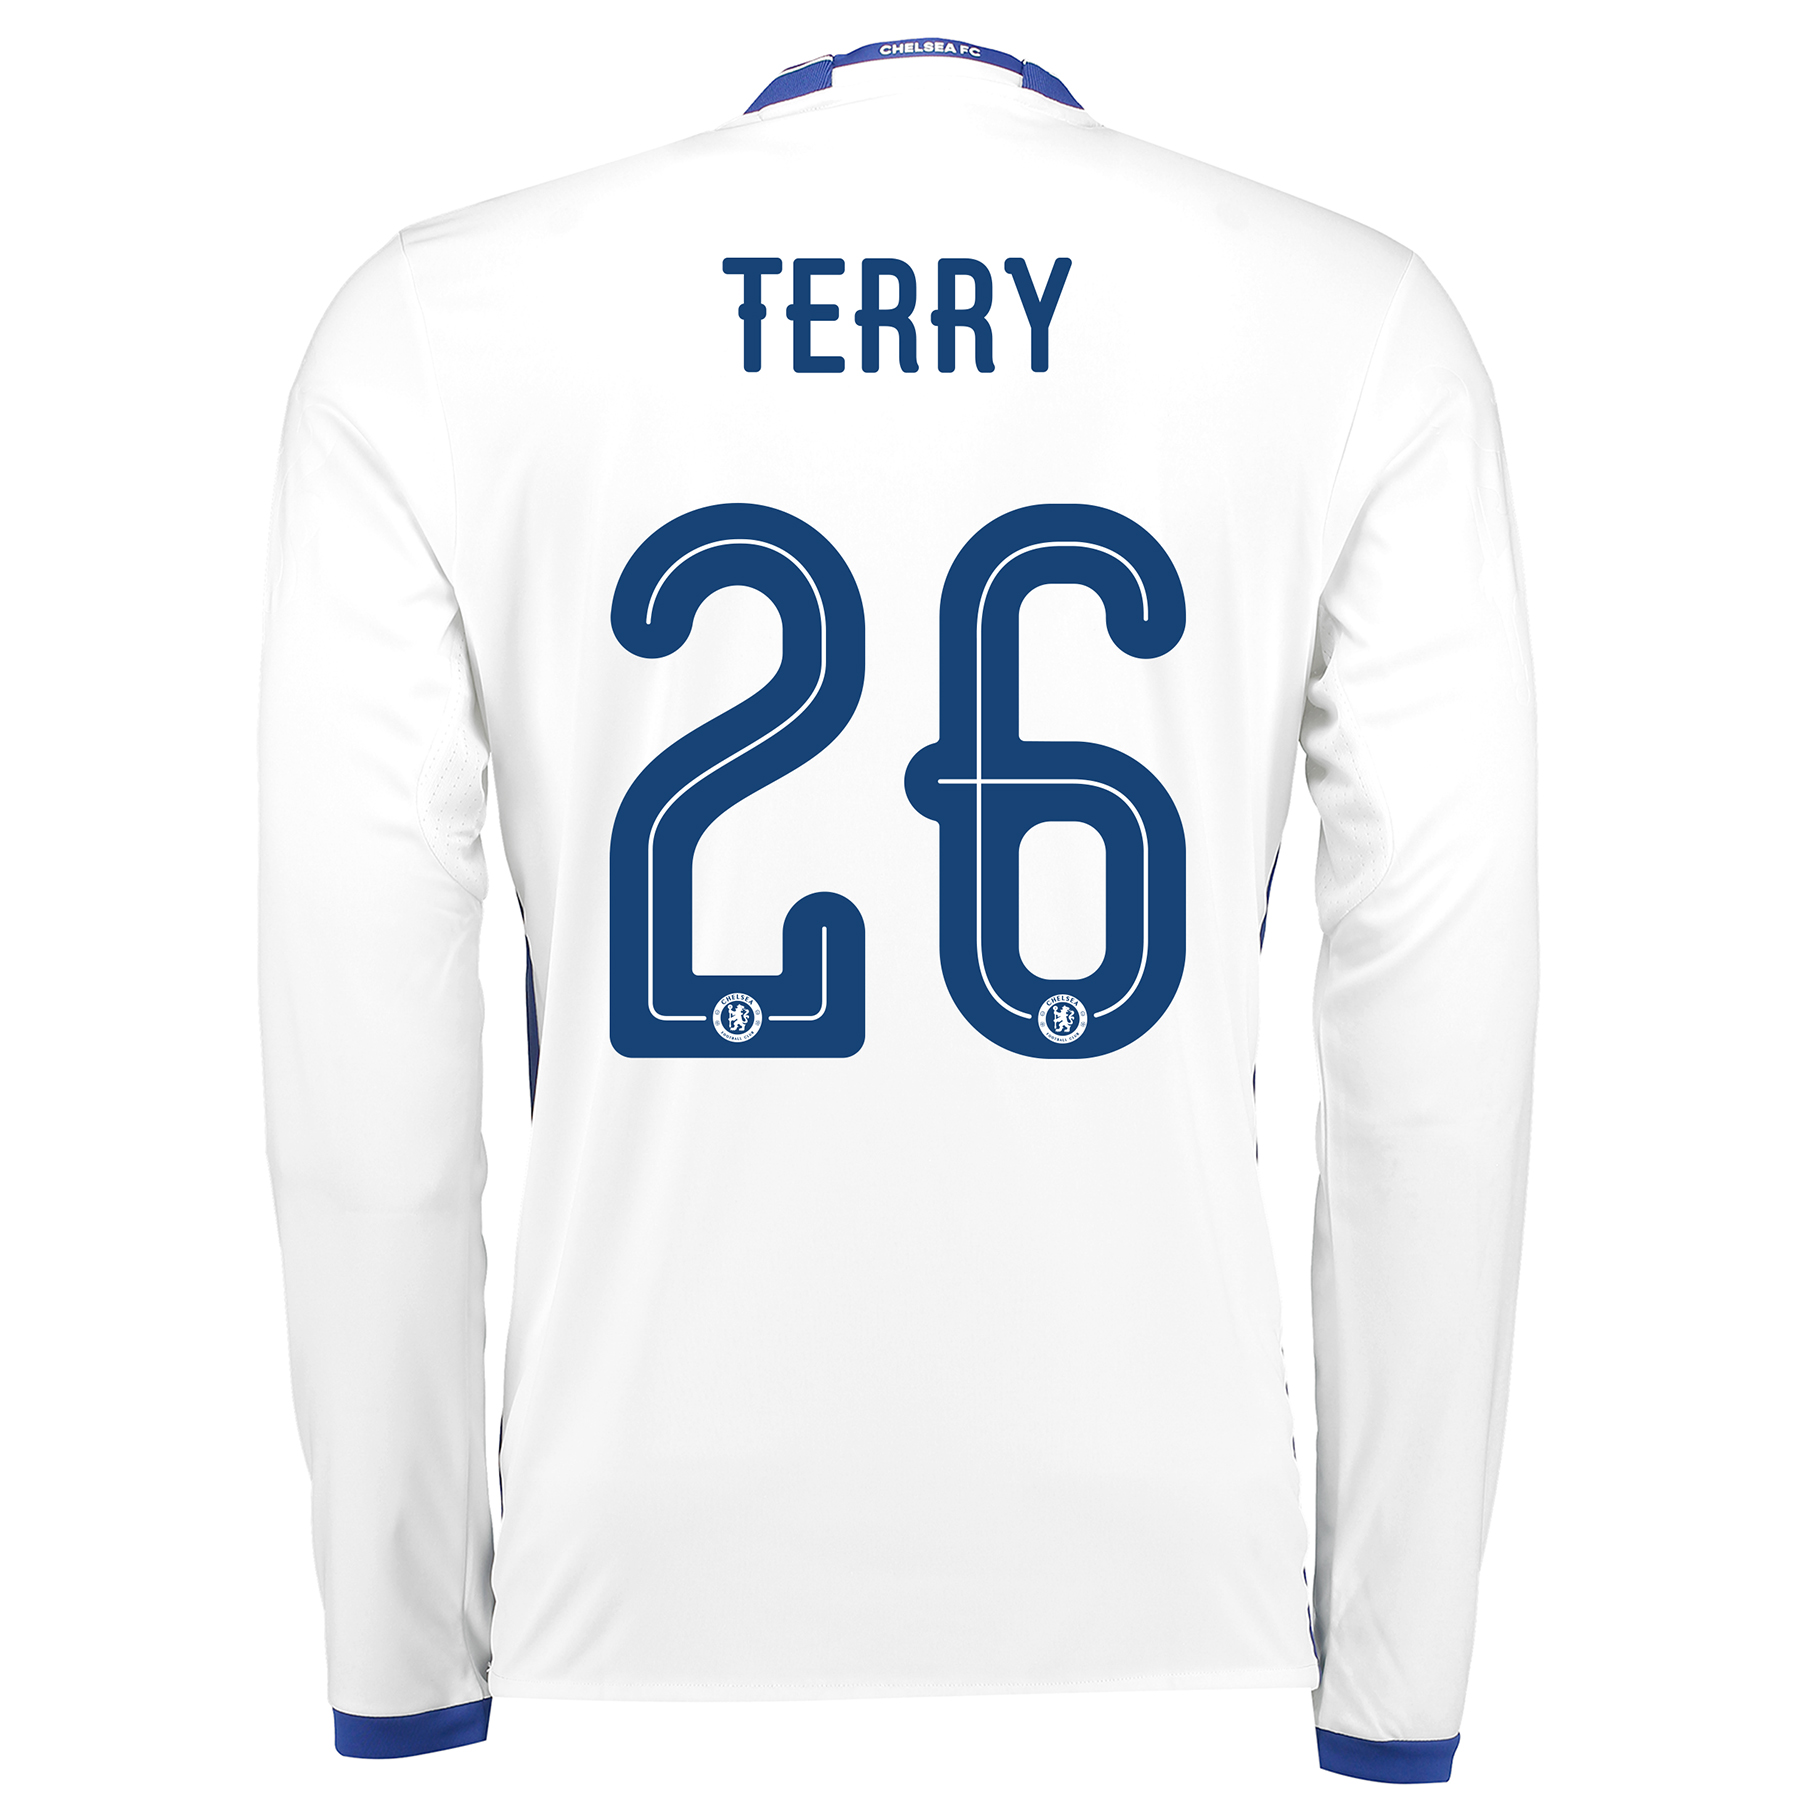 Chelsea Linear Third Shirt 16-17 - Long Sleeve with Terry 26 printing